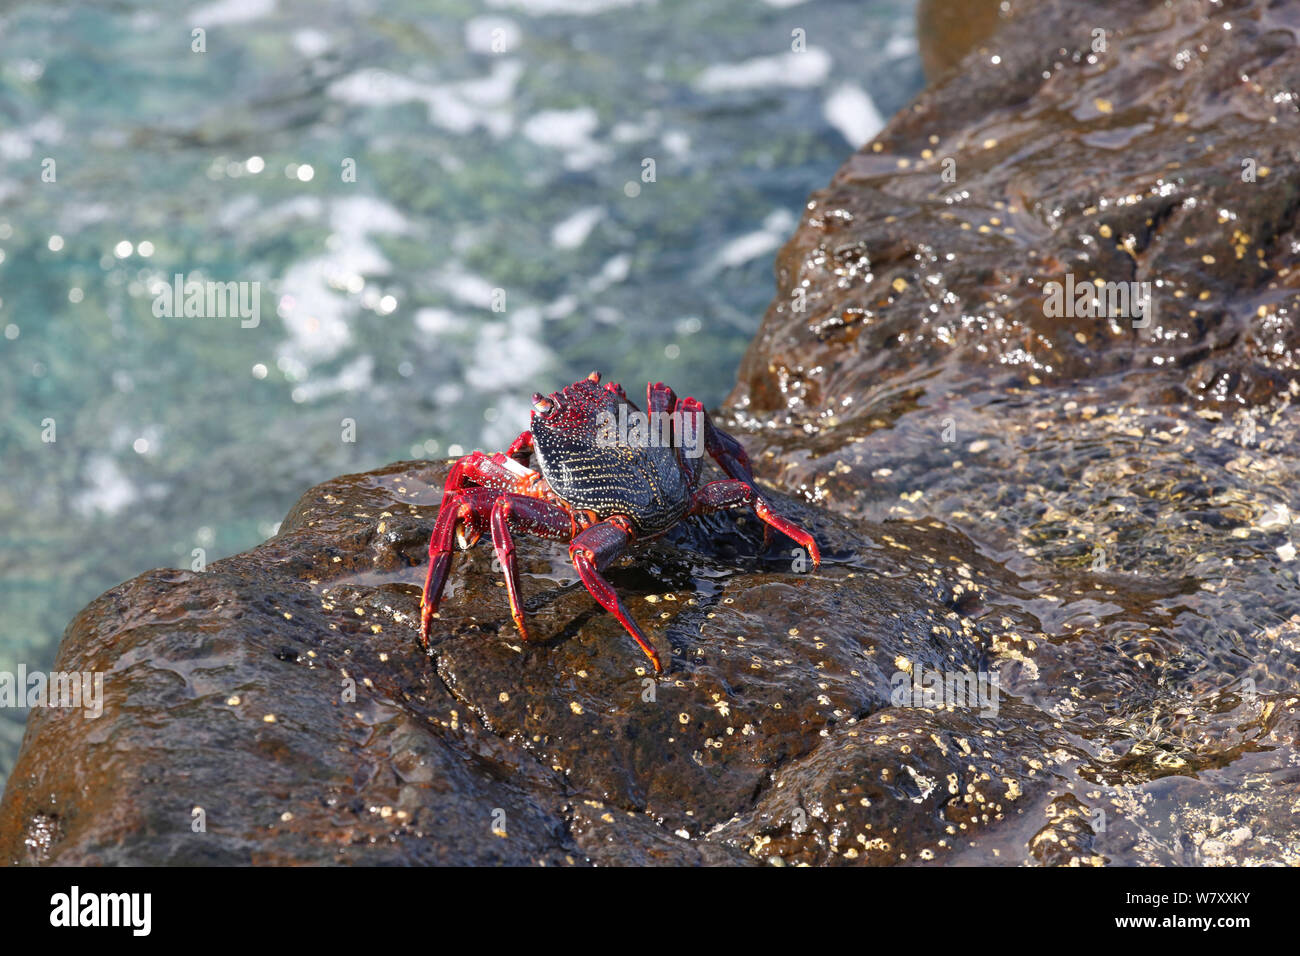 Red rock crab (Grapsus adscensionis) on rock, La Palma, Canary Islands. Stock Photo